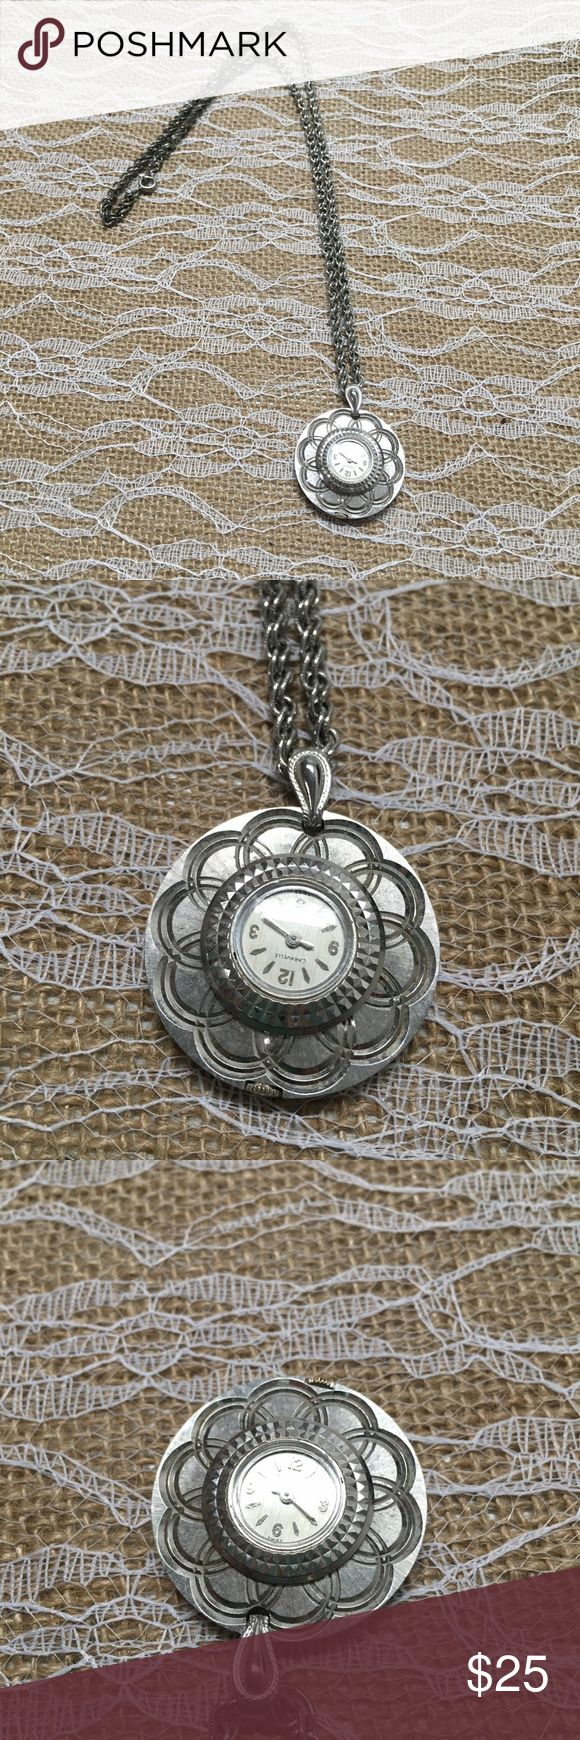 Beautiful silver tone clock necklace This is a good condition Vintage Caravelle piece it has wind up clock that is attached to necklace it is upside down so you can tell what time it is when you look at it it works still winds up Jewelry Necklaces